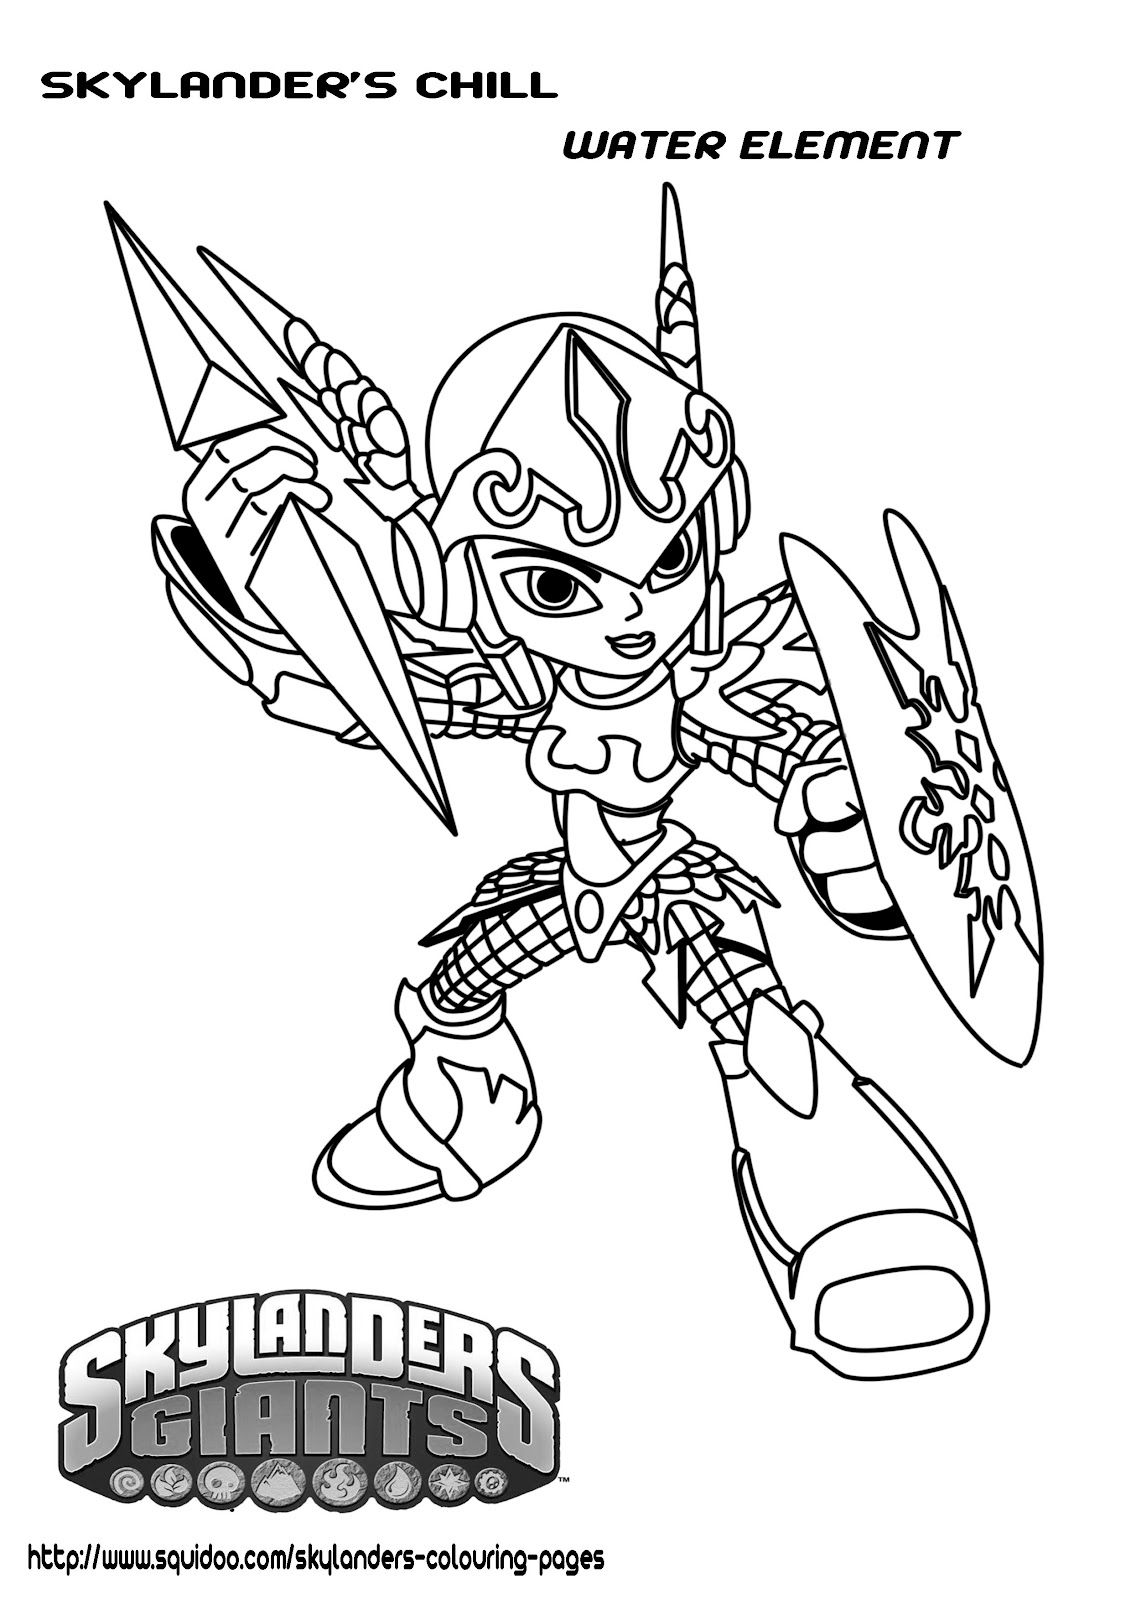 skylander color pages - Google Search | Color my heart | Pinterest ...